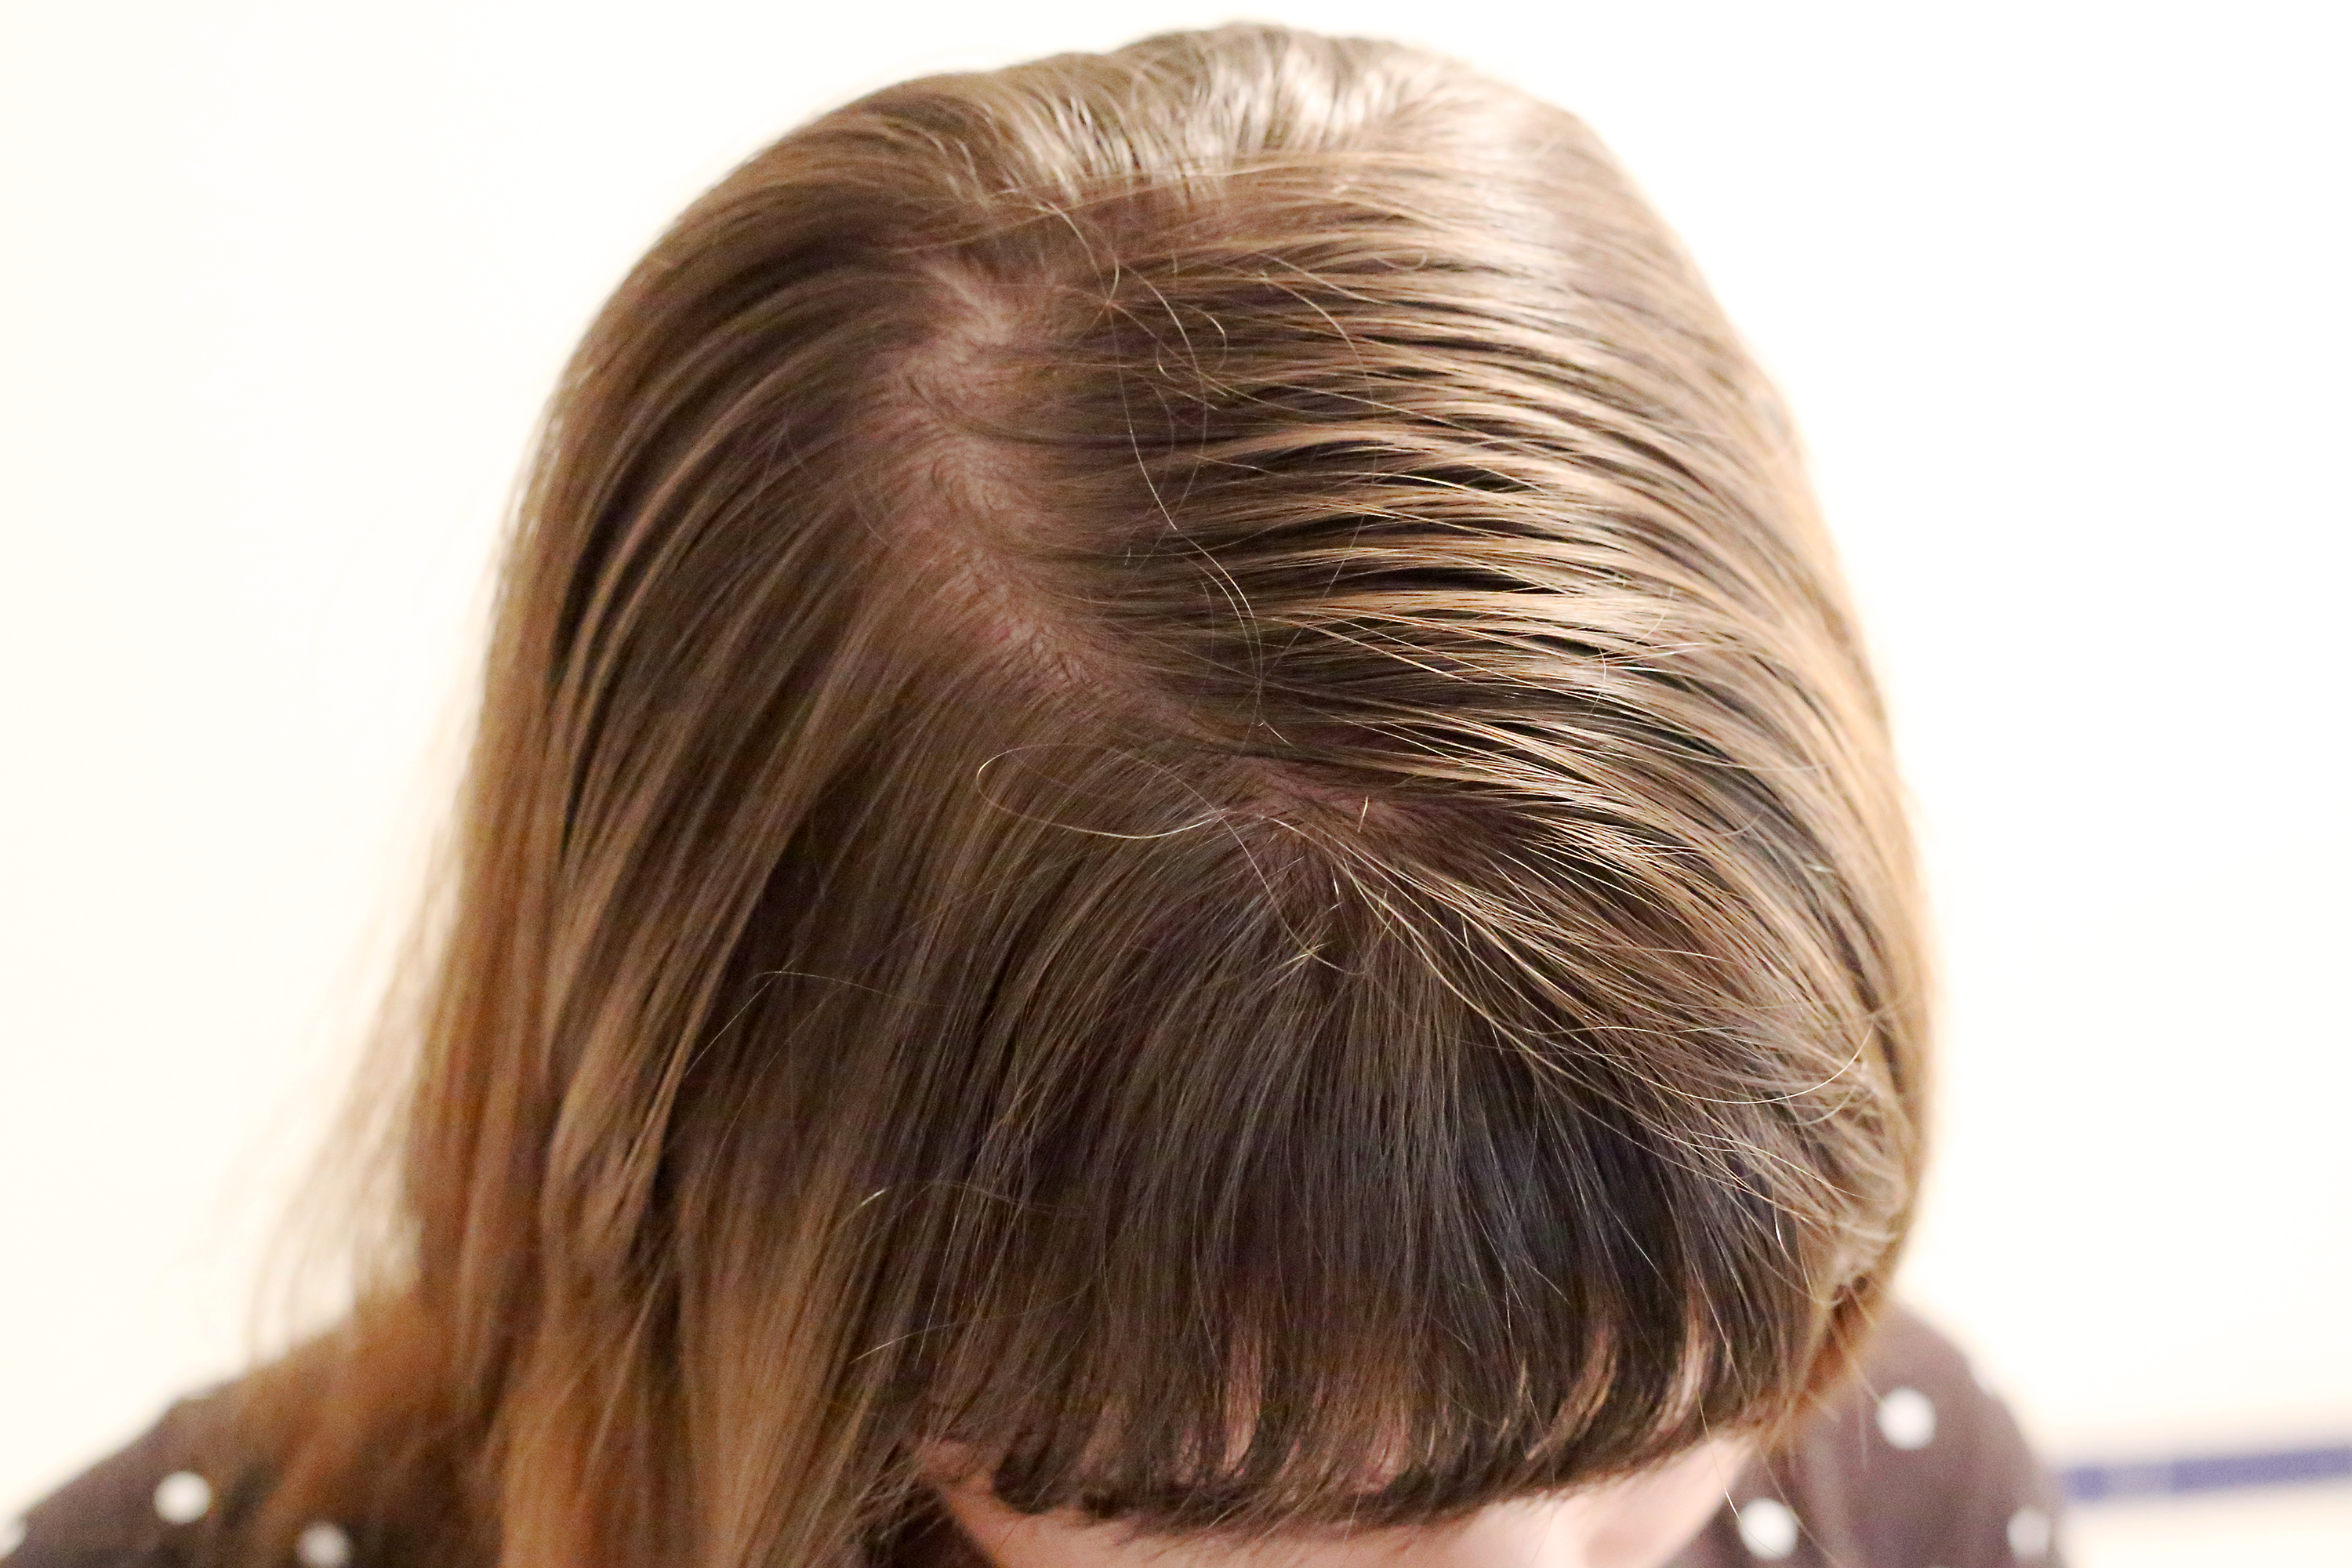 hair care tips for fine, thin, oily hair | livestrong